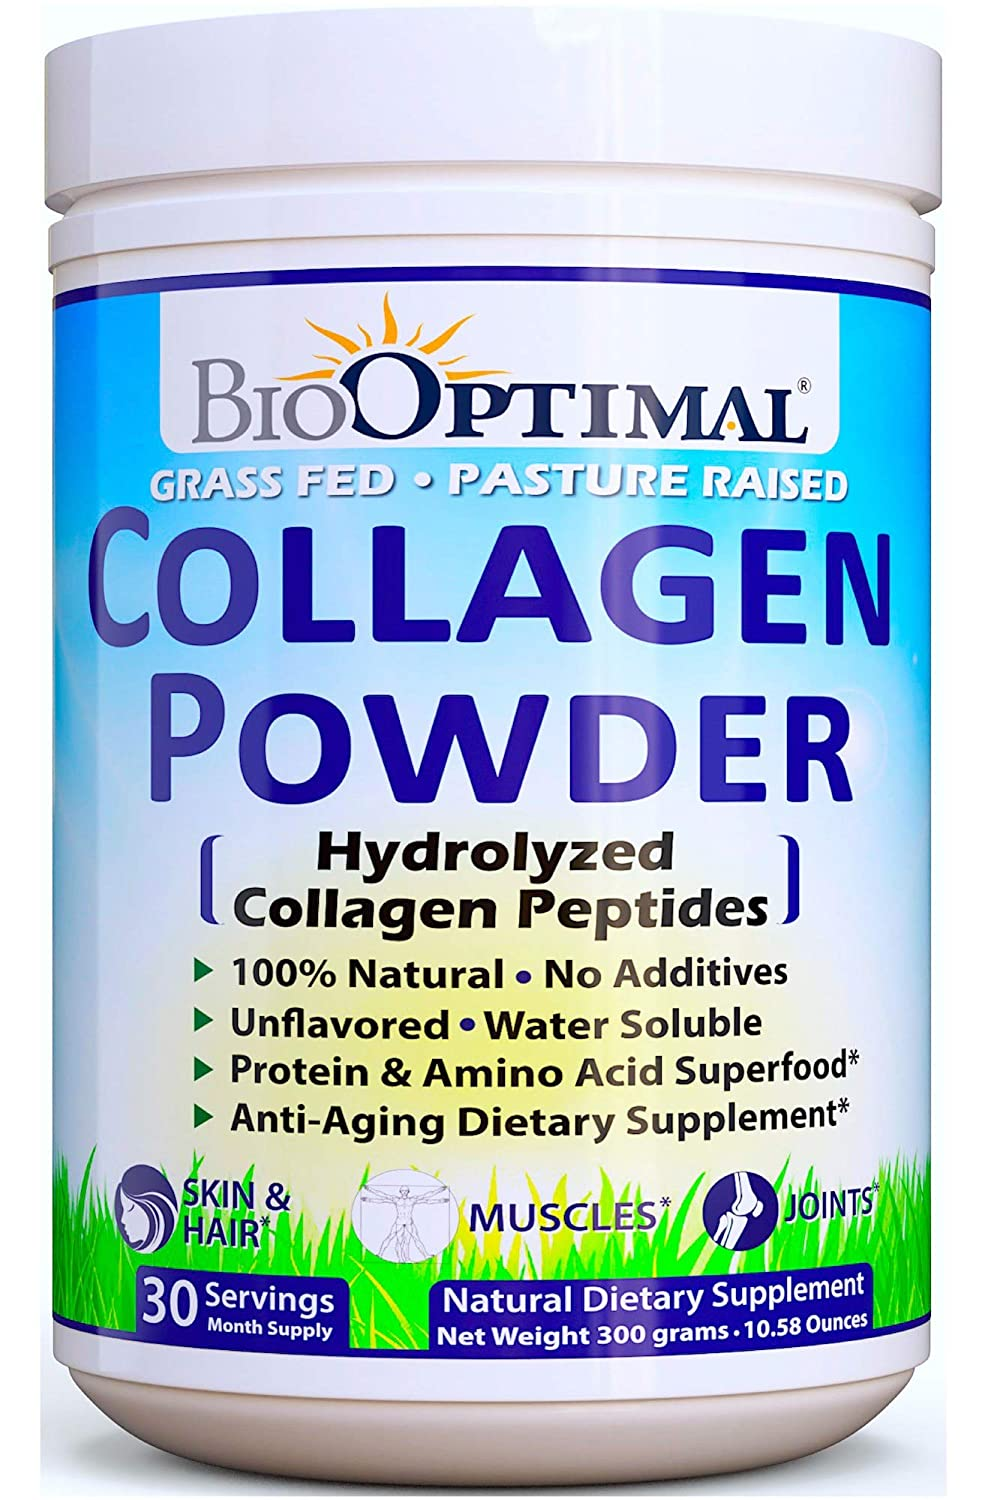 BioOptimal Collagen Powder, Collagen Peptides, Grass Fed, Non-GMO Premium Quality Hydrolyzed Collagen Protein, Pasture Raised, Dissolves Easily, 300 ...